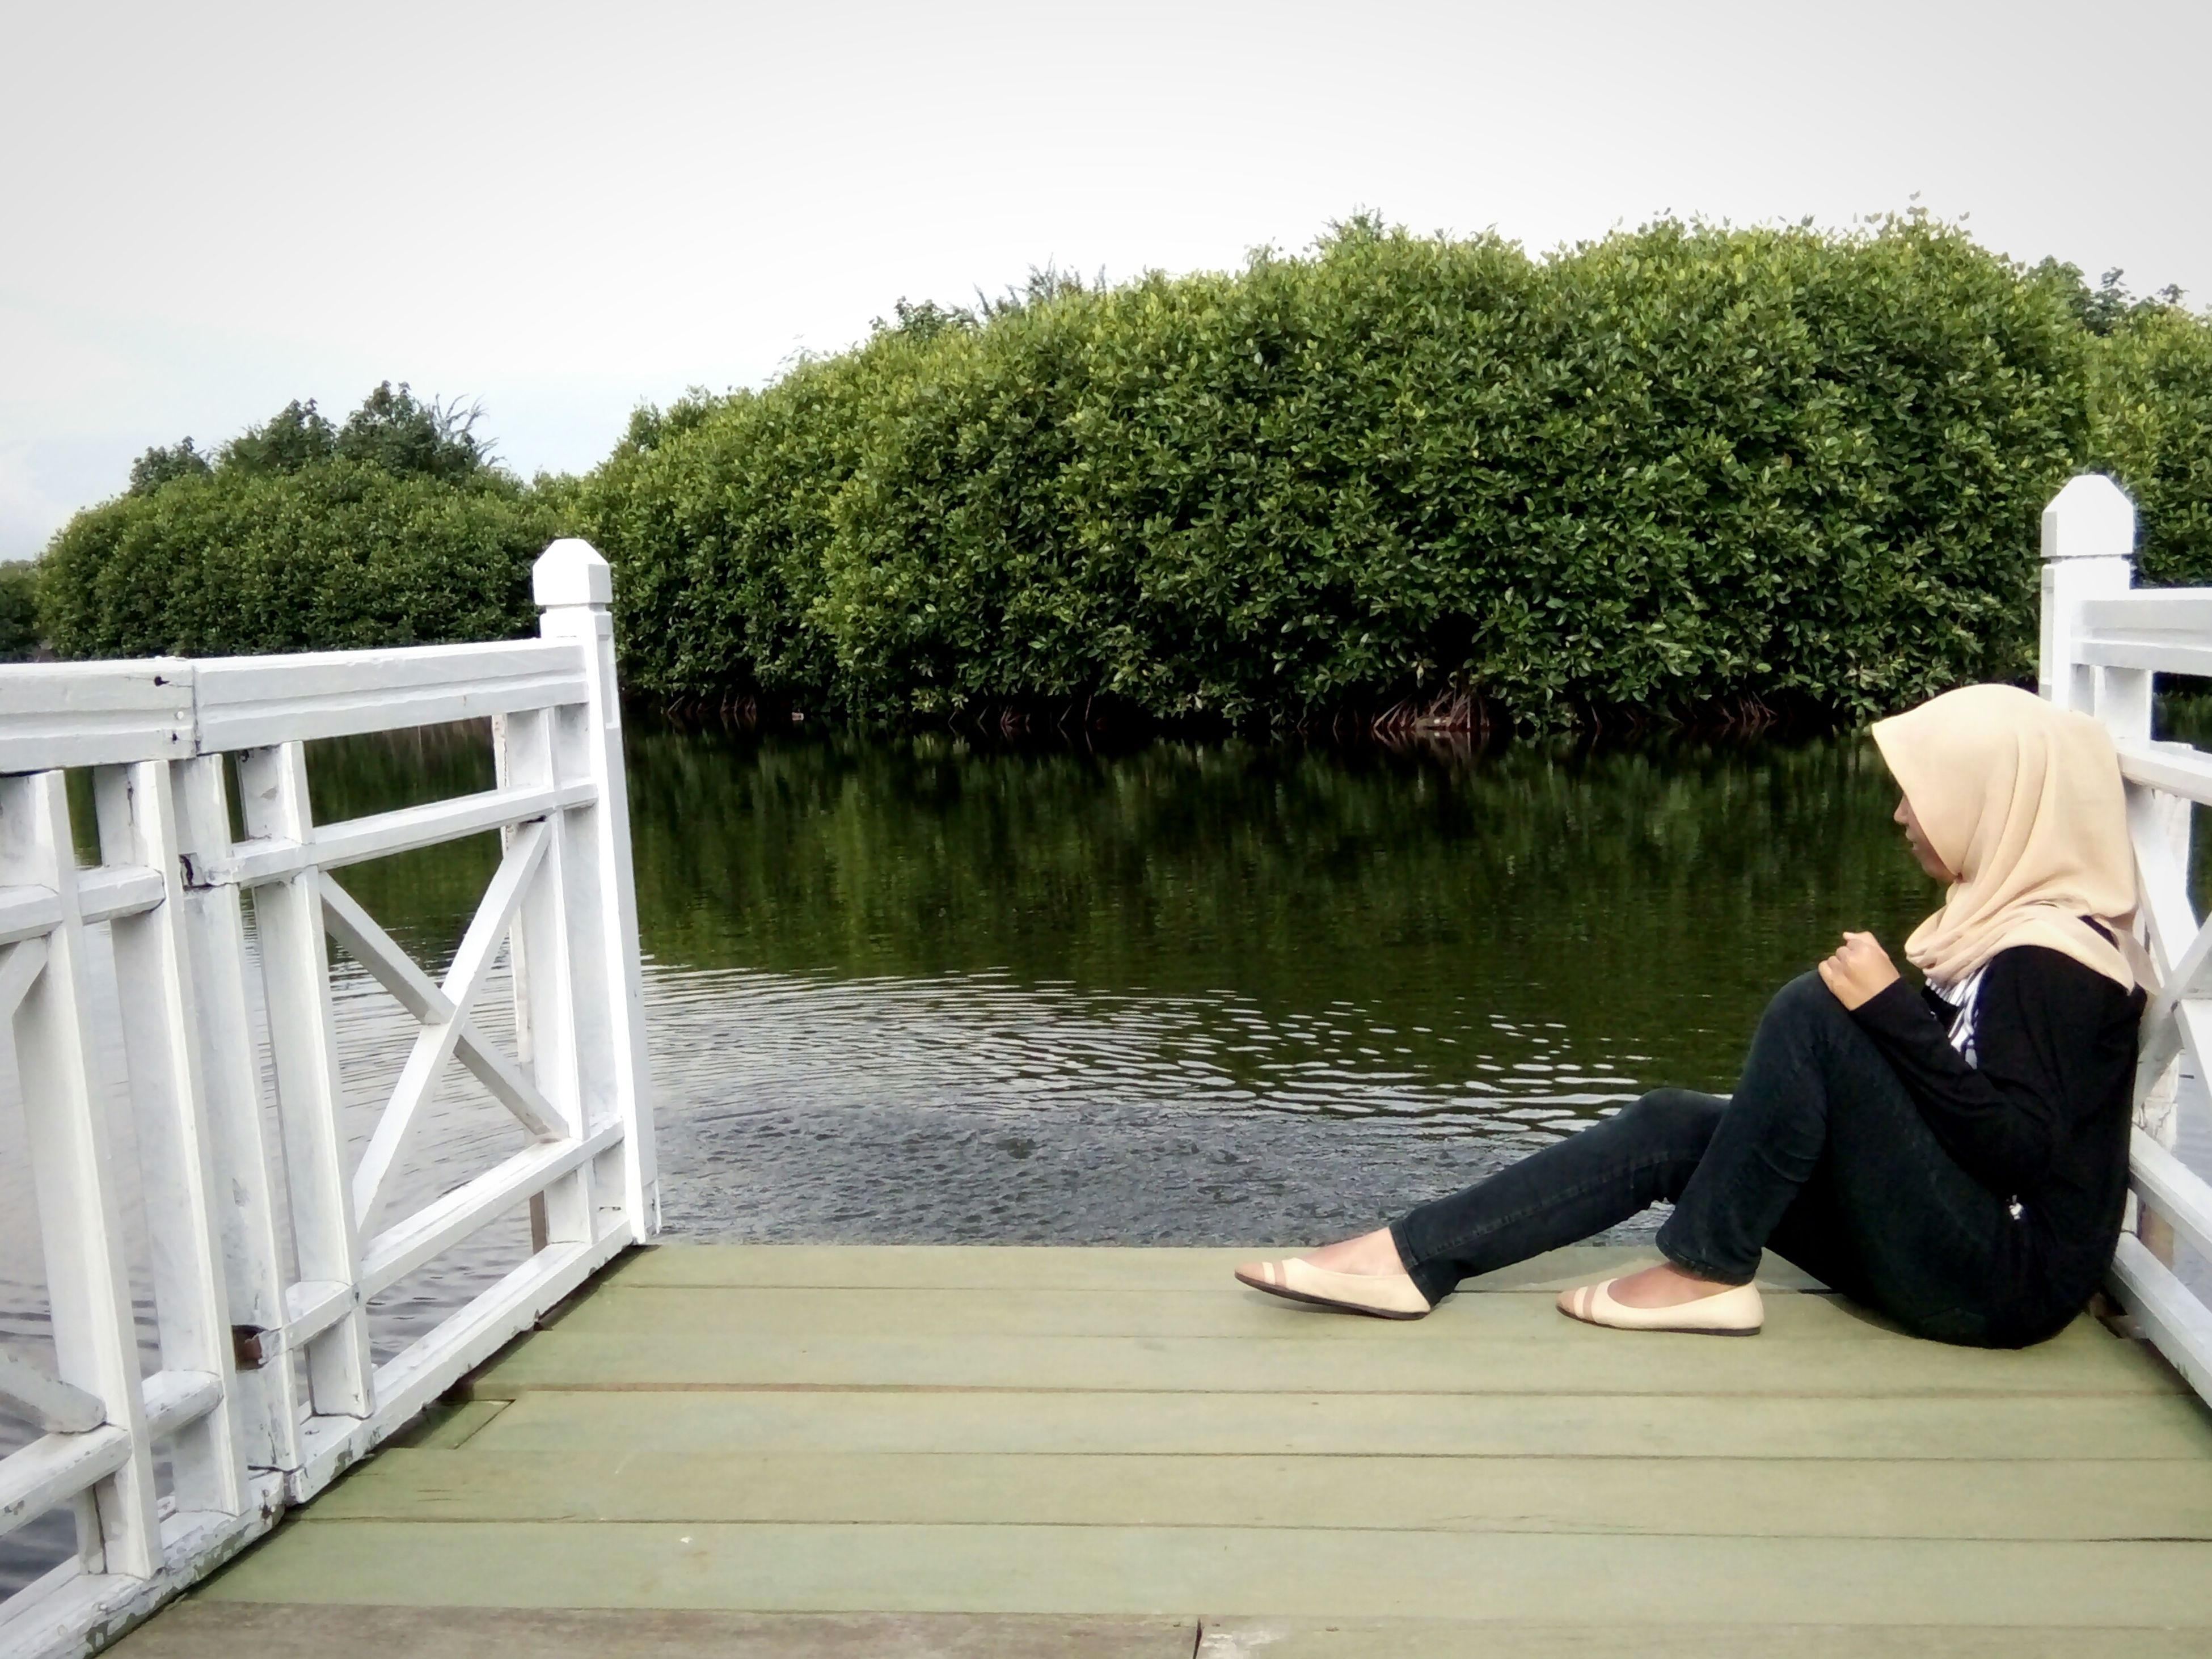 tree, leisure activity, lifestyles, water, lake, rear view, railing, full length, casual clothing, sitting, wood - material, tranquility, relaxation, pier, person, nature, tranquil scene, standing